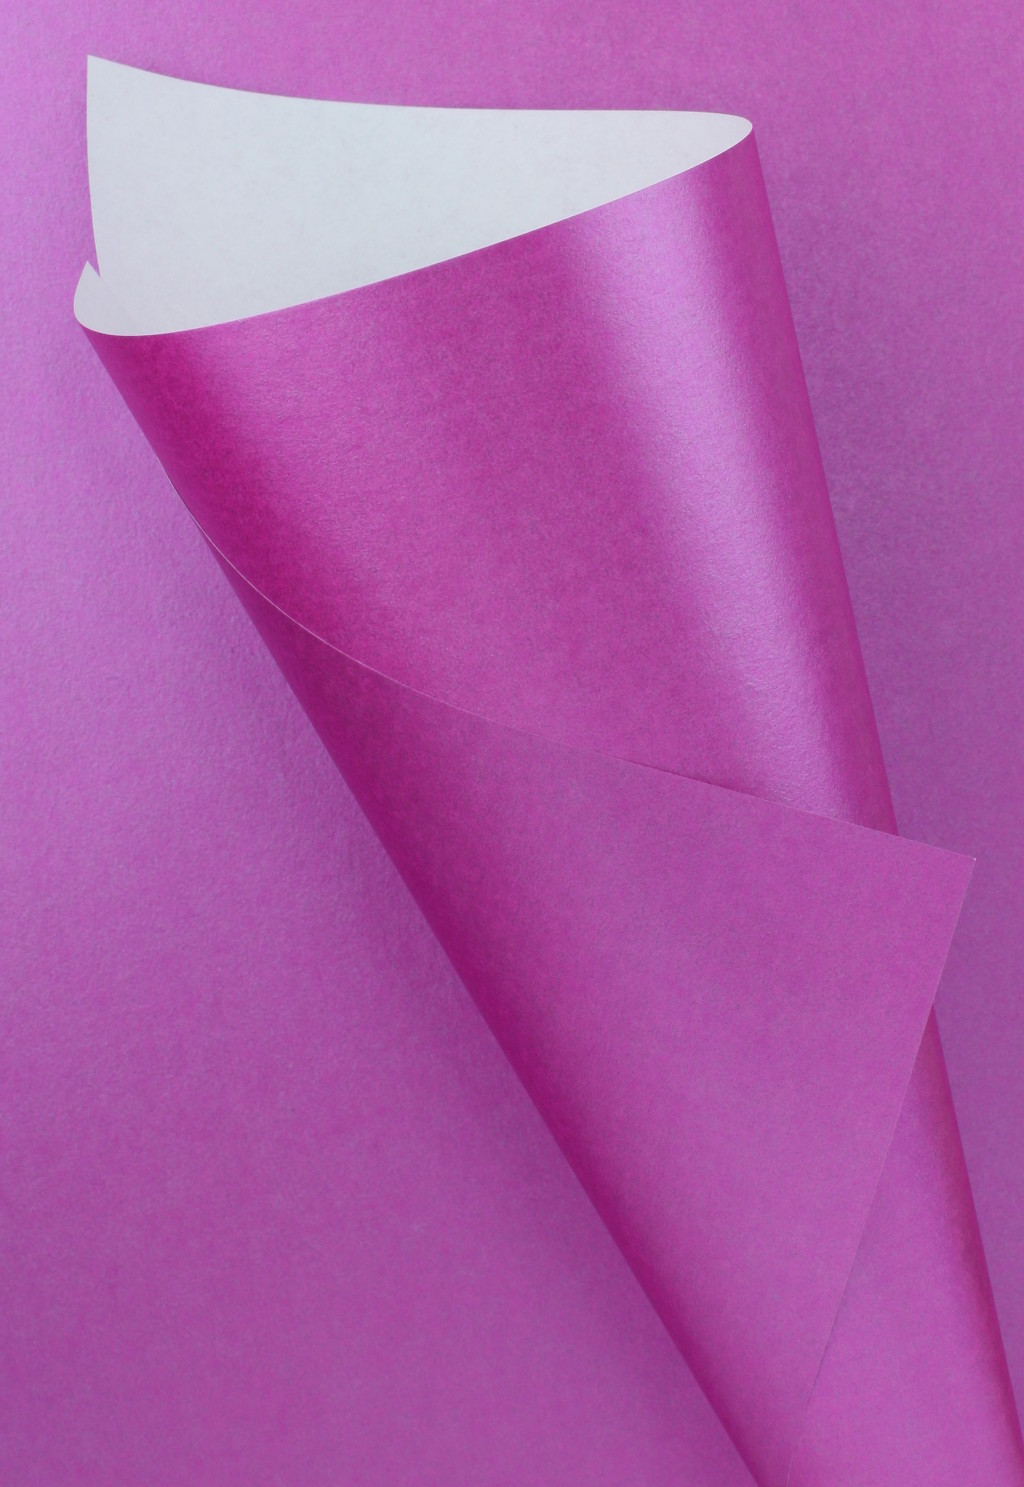 Pearlescent Pearlescent Fuchsia Pink Paper 90gsm